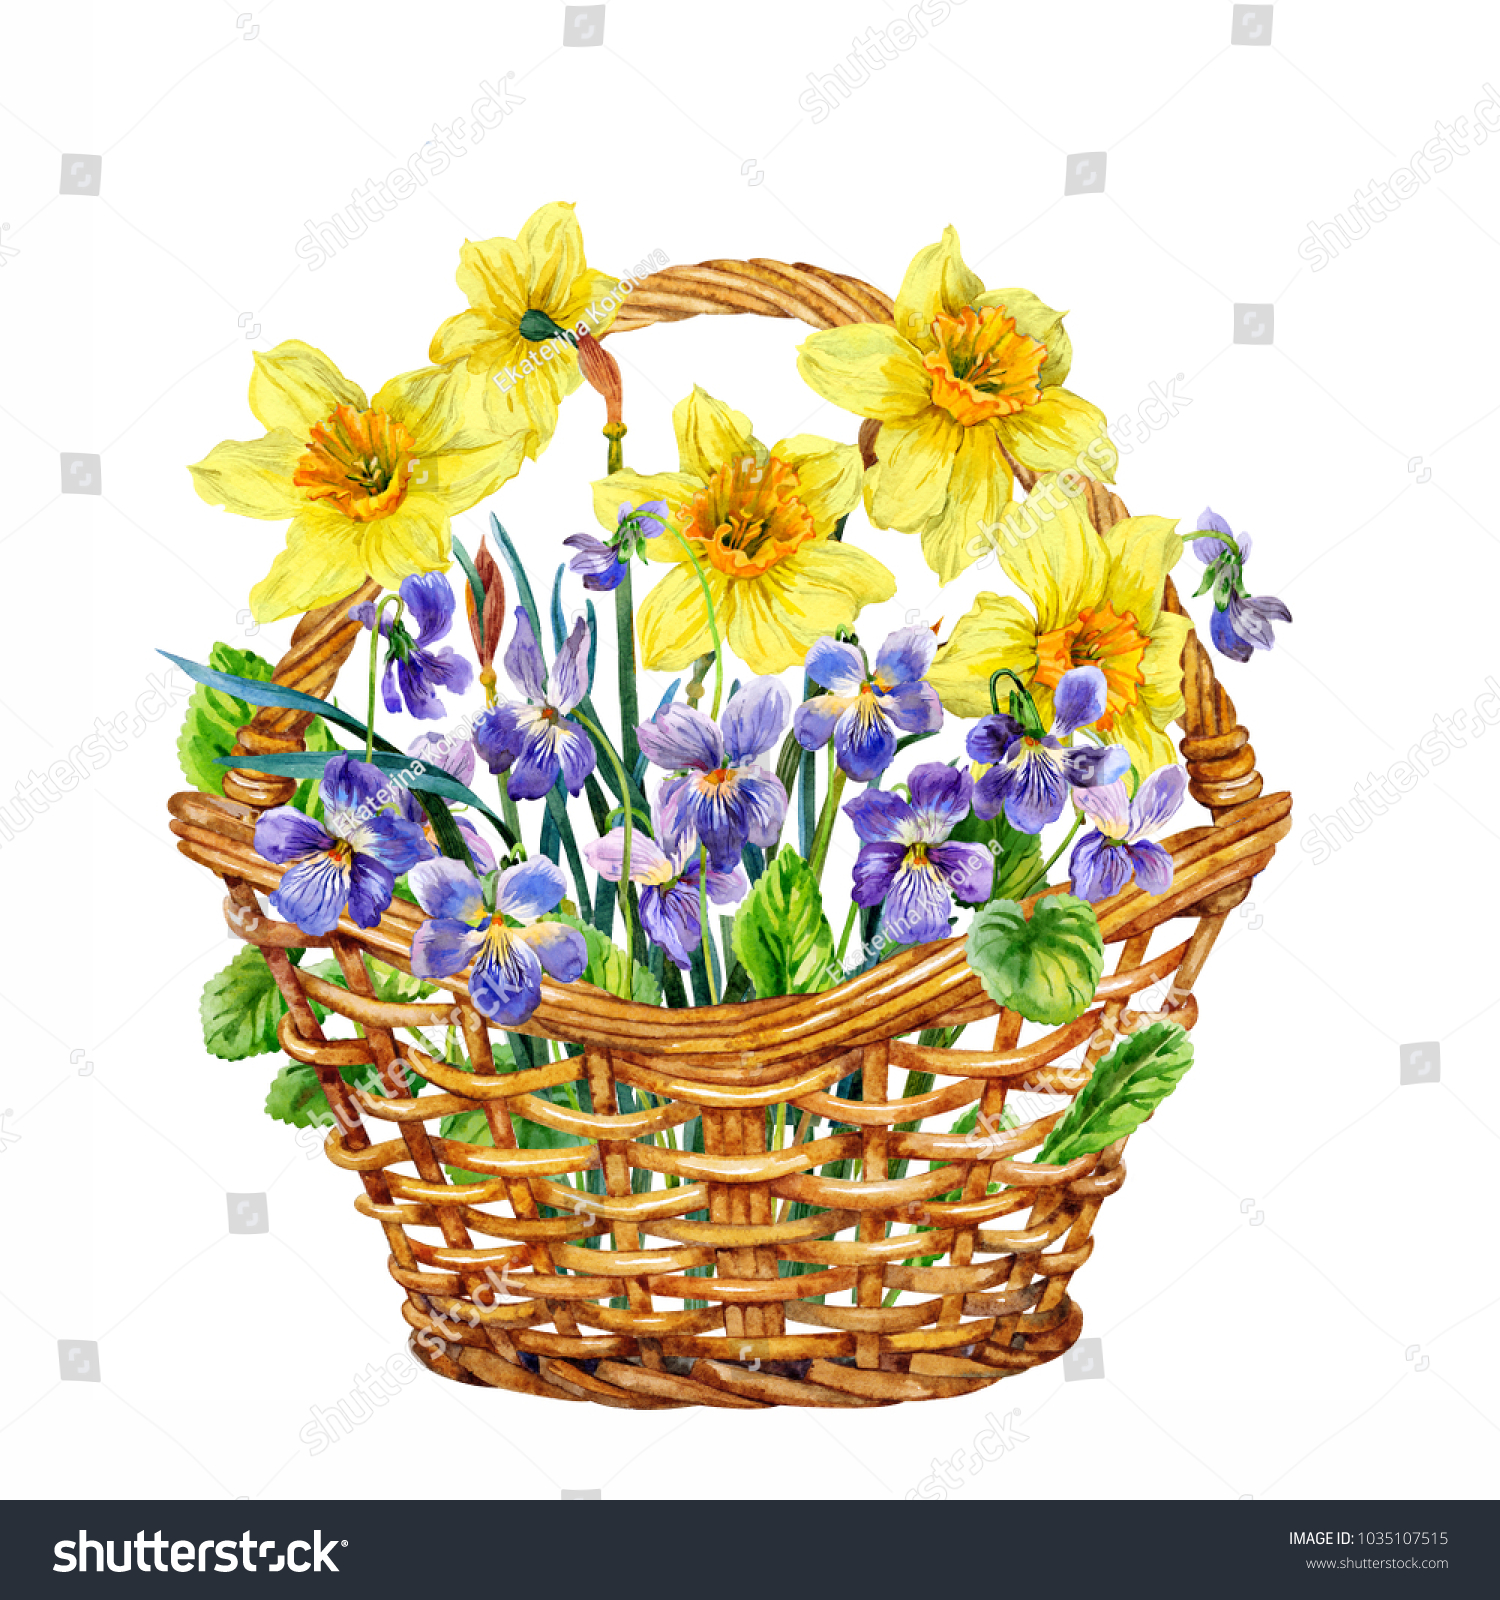 Daffodils Violets Basket Spring Flowers Watercolor Stock